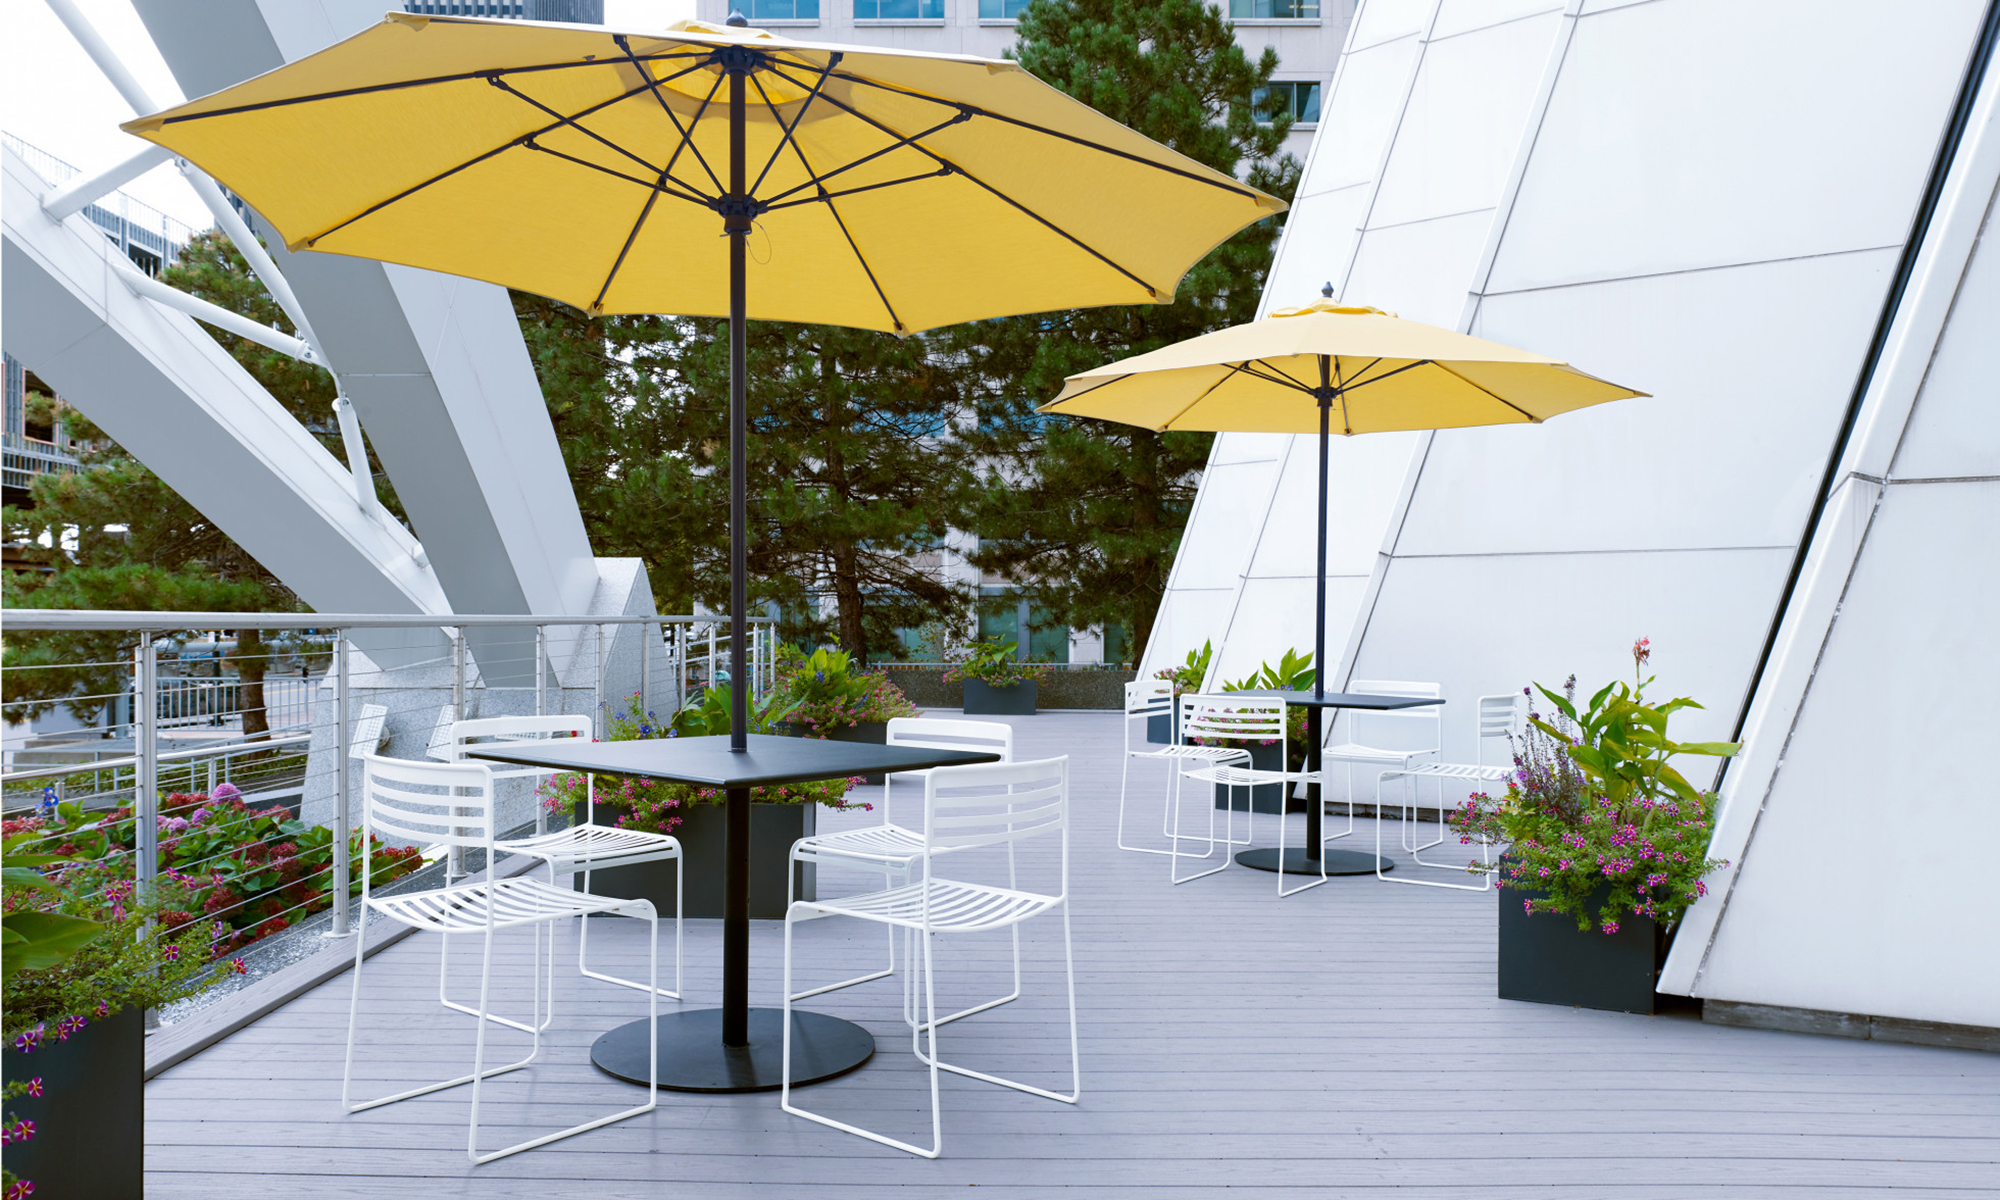 The newest weather-resistant materials and pops of color make selecting outdoor work and break time furniture a breeze!